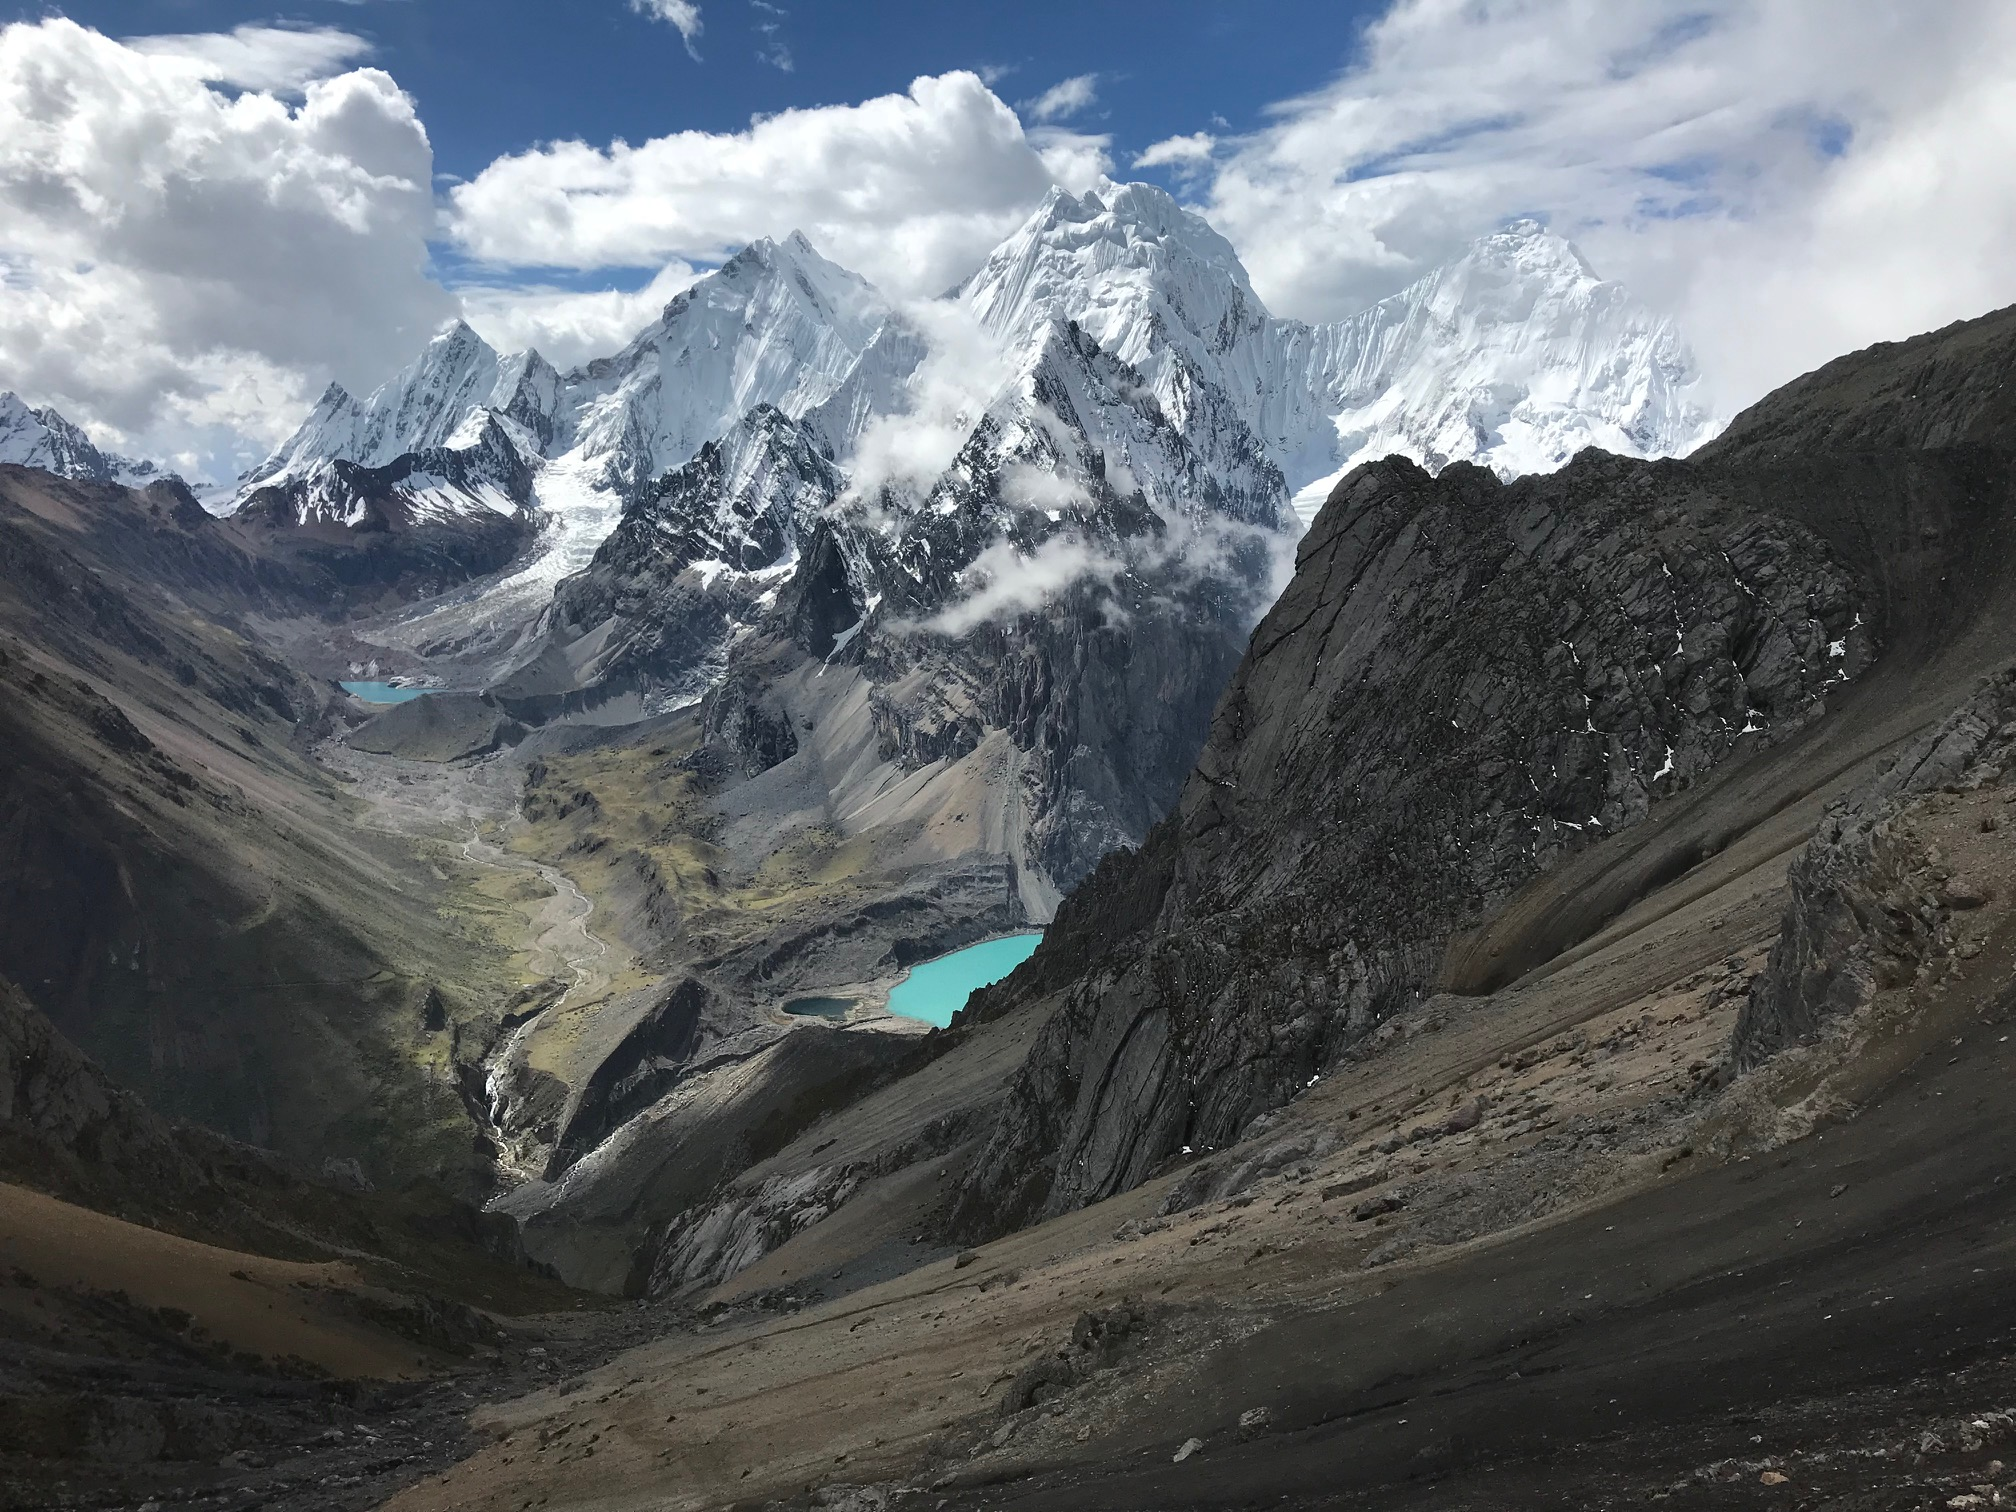 Views of the Cordillera Huayhuash